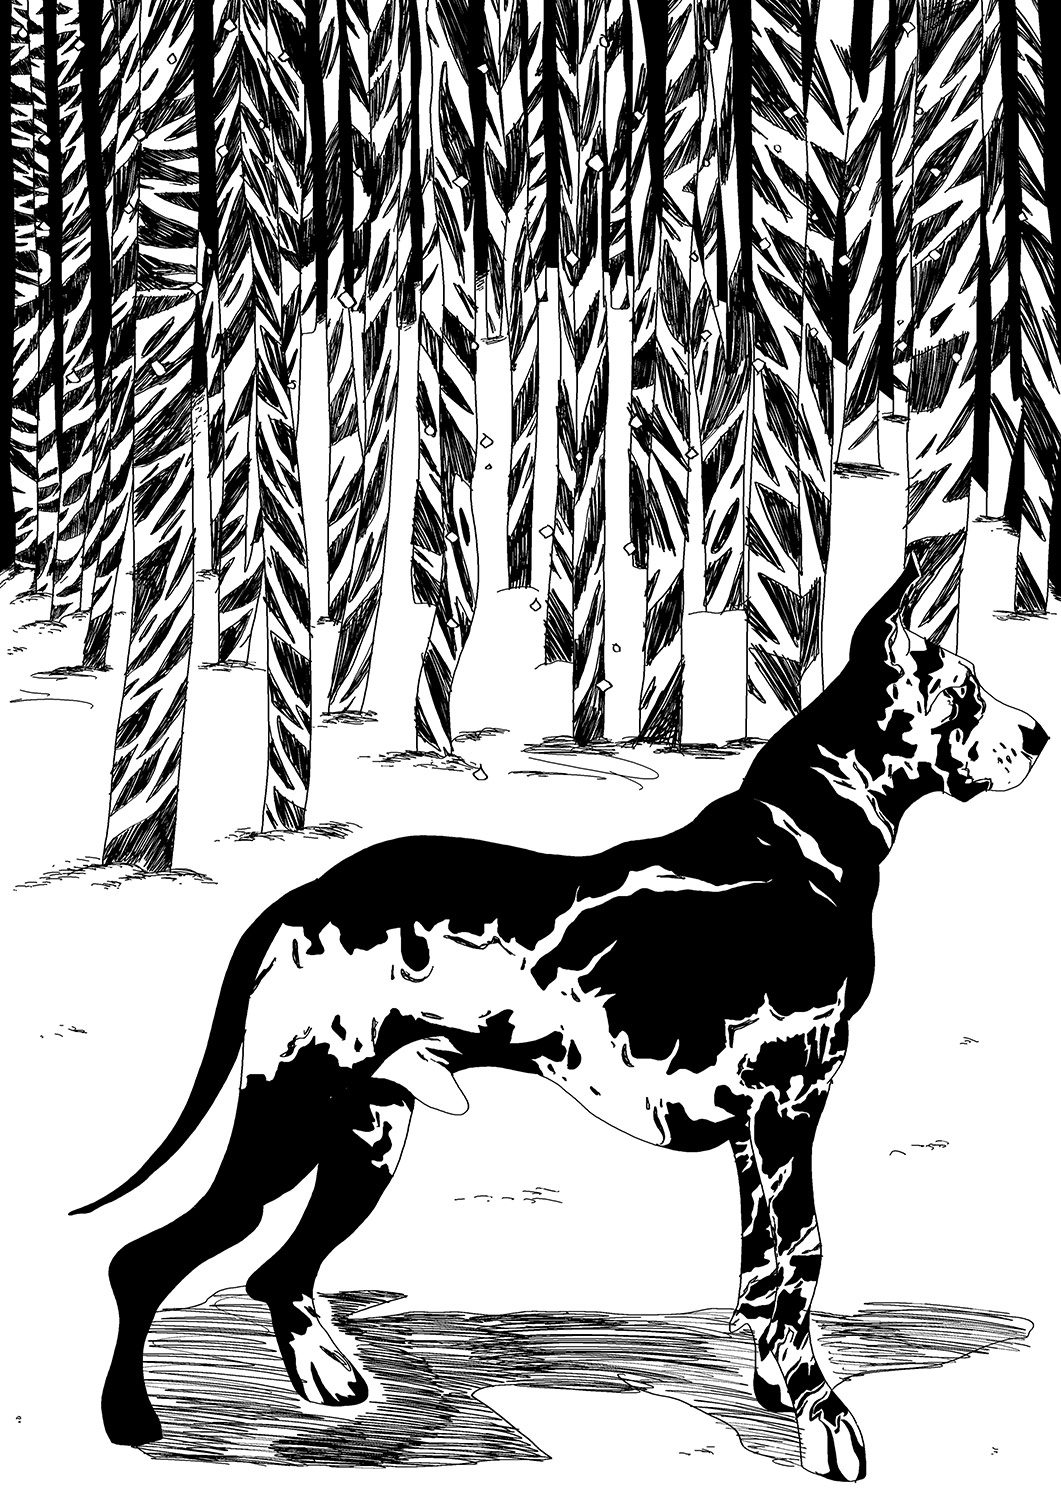 art-prints, gliceé, animal, graphical, illustrative, landscape, monochrome, botany, cartoons, nature, pets, seasons, black, white, ink, paper, black-and-white, contemporary-art, danish, decorative, design, dogs, interior, interior-design, modern, modern-art, nordic, posters, prints, scandinavien, scenery, sketch, wild-animals, Buy original high quality art. Paintings, drawings, limited edition prints & posters by talented artists.